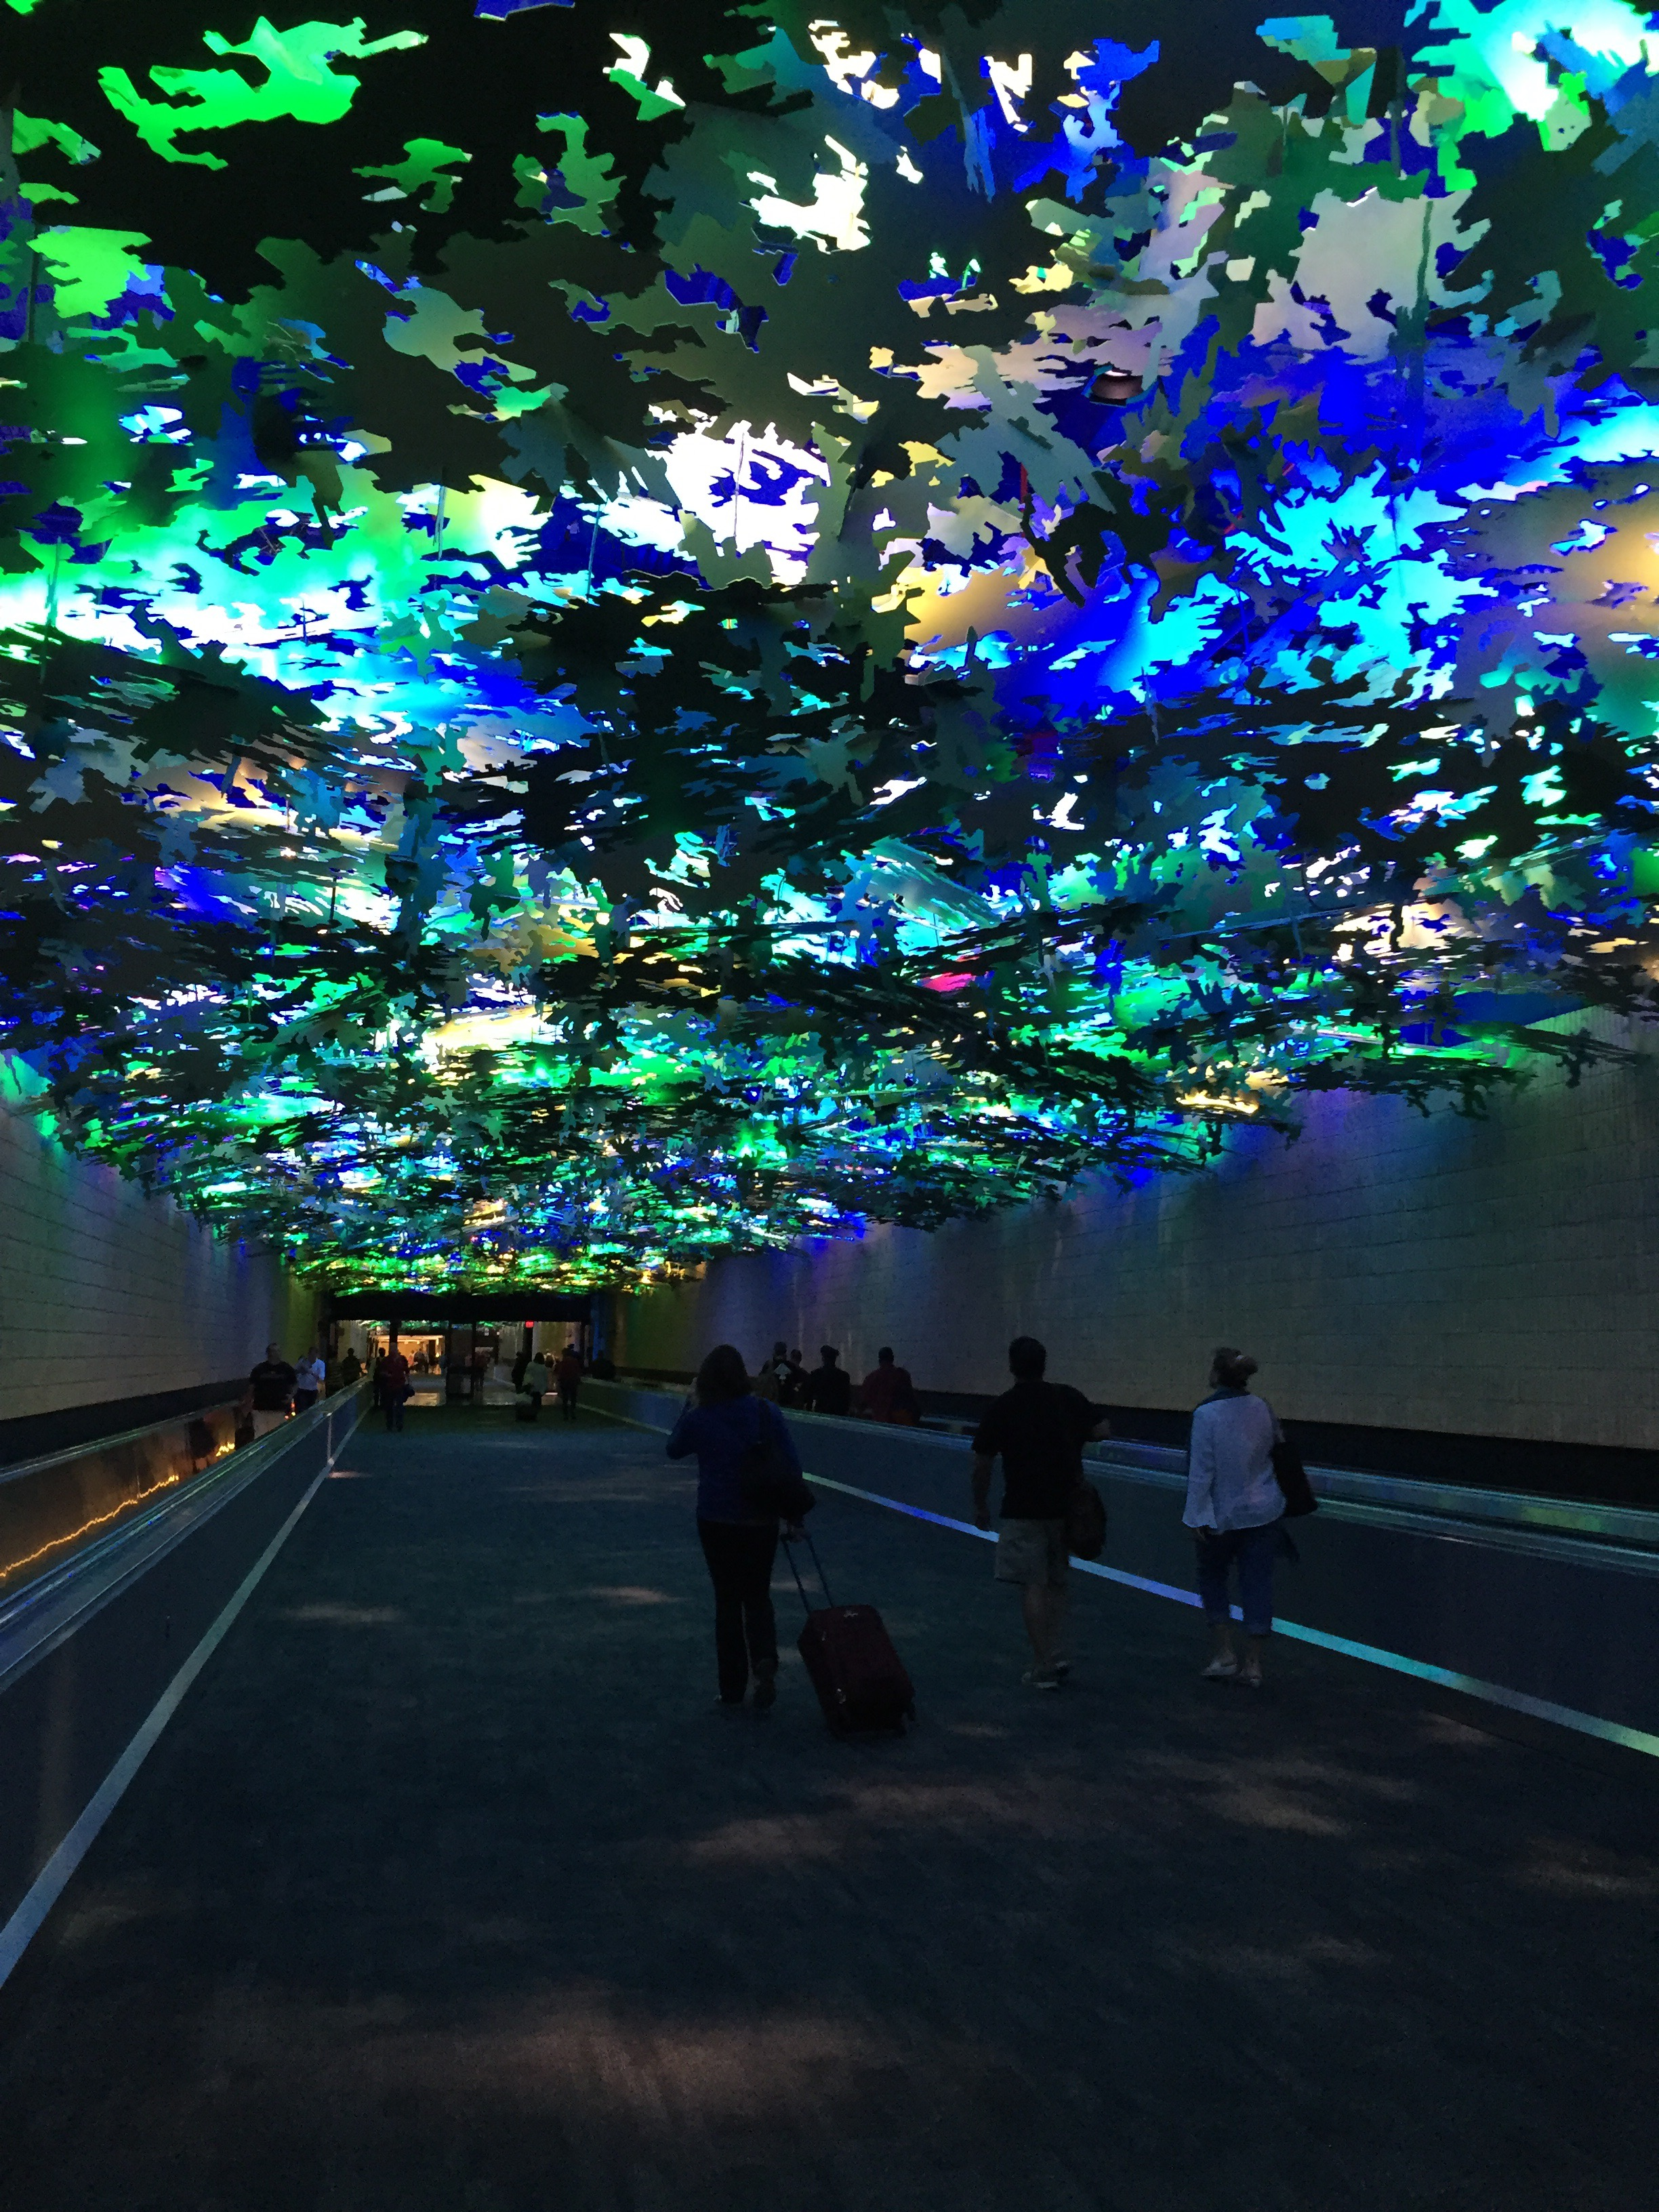 subdued lighting. Walking From Concourse B To A At The Atlanta Airport Takes You Through This Walkway, Which Features Leaf-like Objects Overhead, Subdued Lighting, Lighting